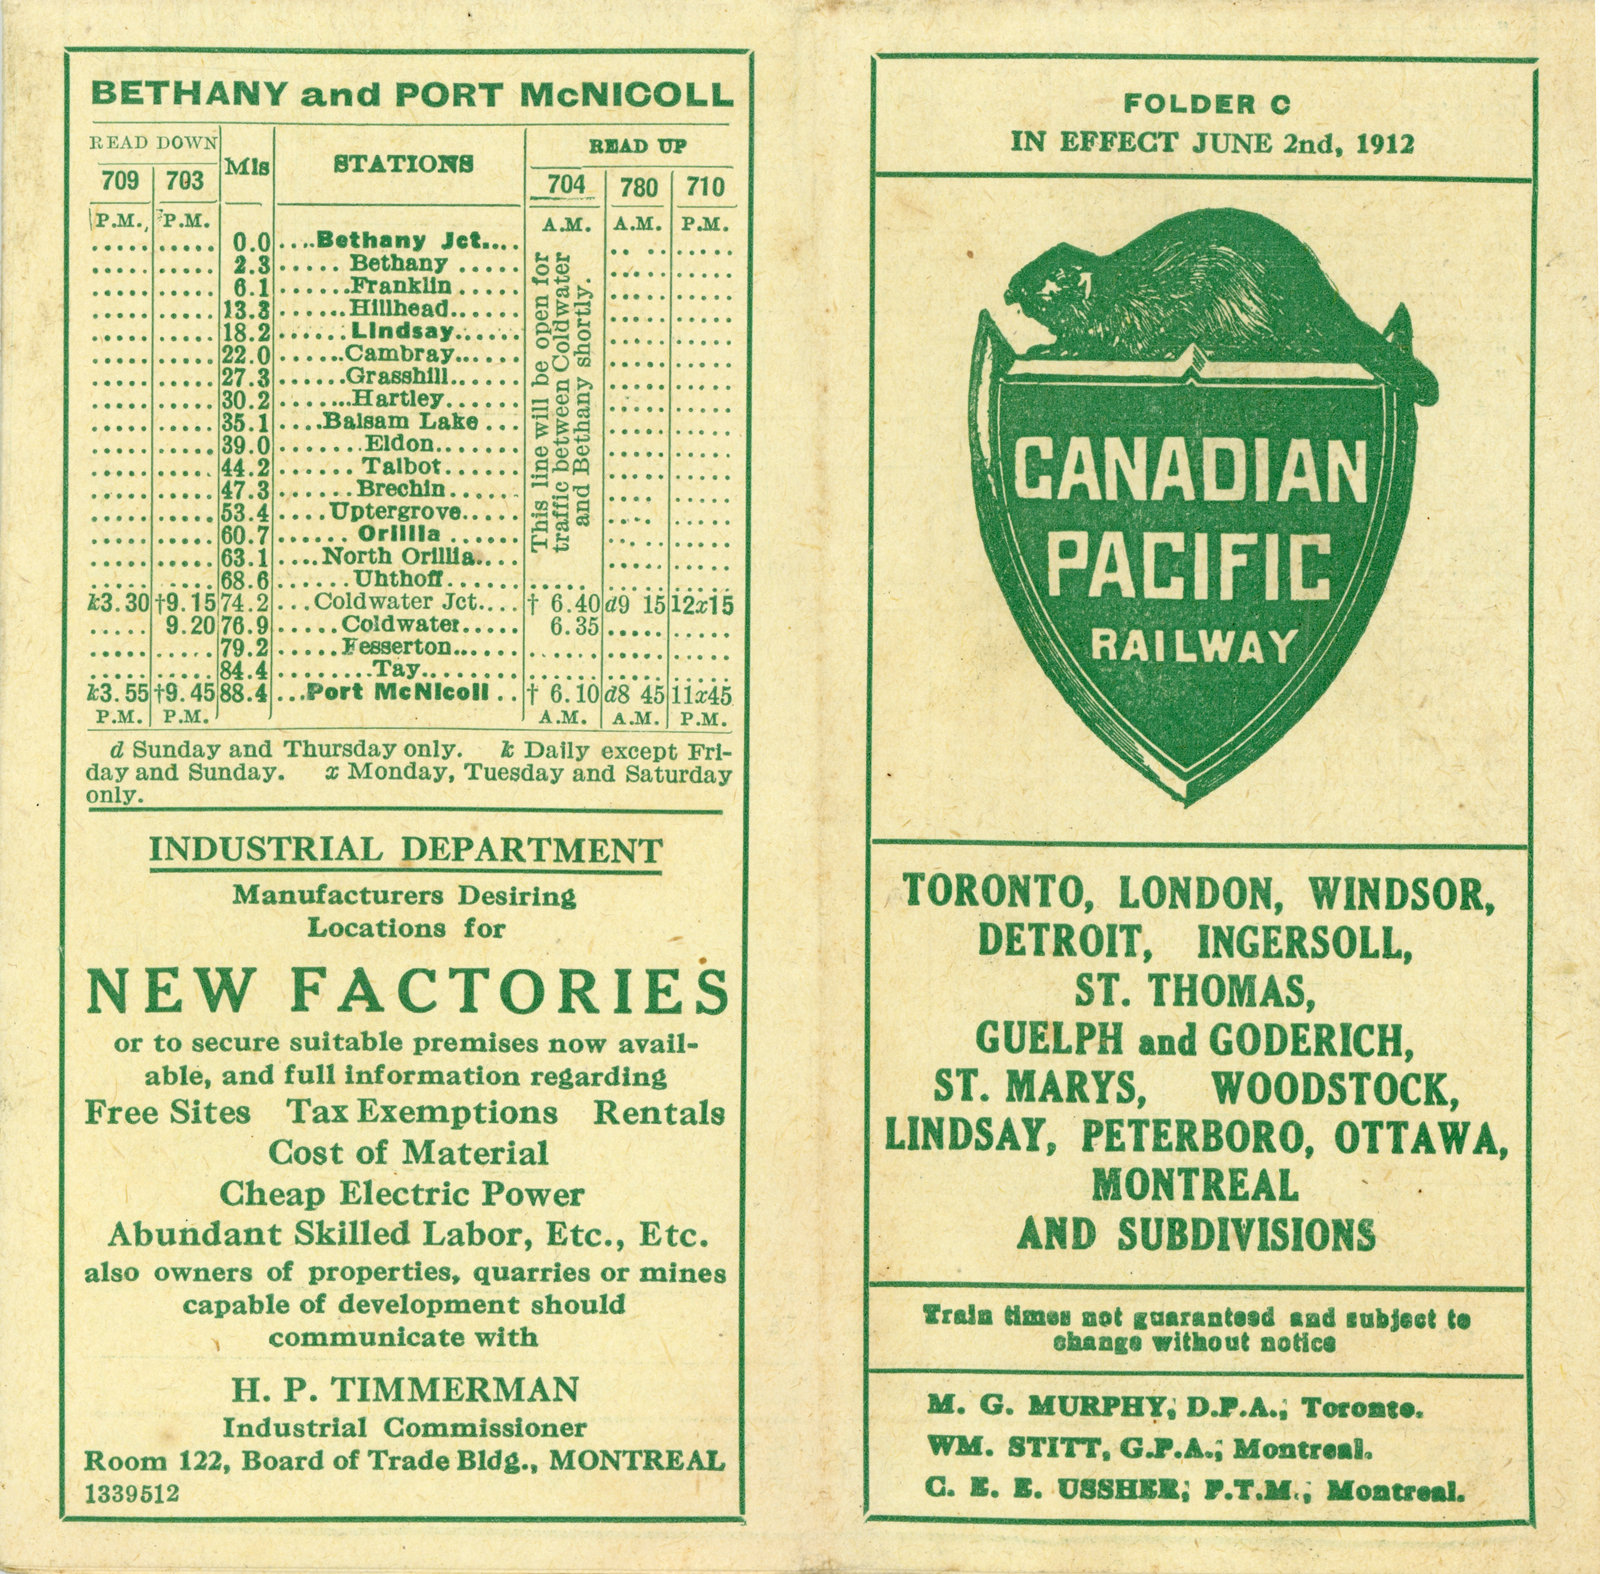 full image view: train schedule, canadian pacific railway: lakes and